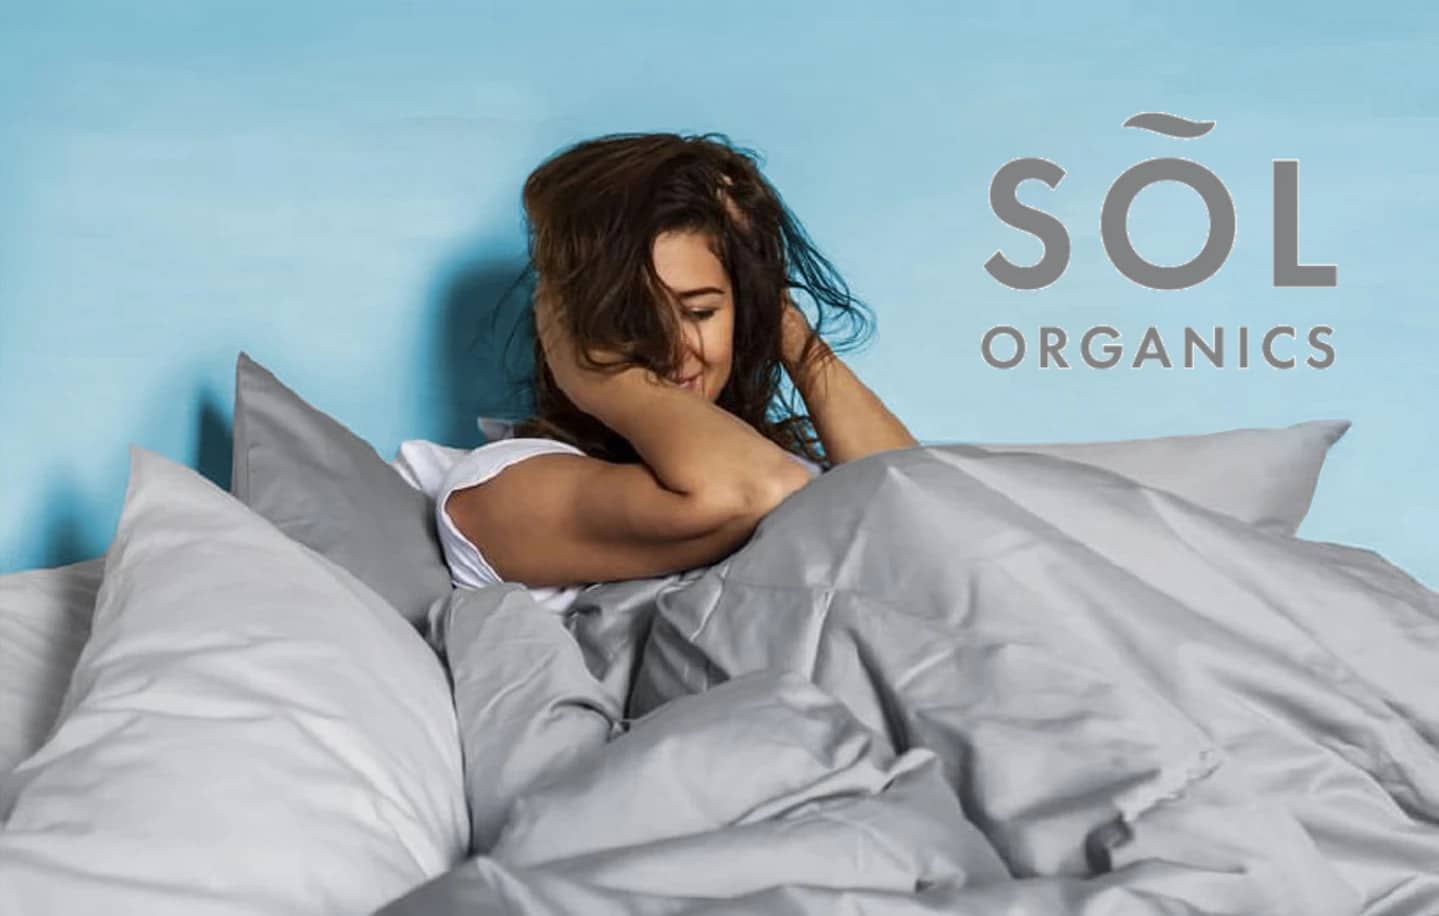 SOL organics cotton and linen sheets review